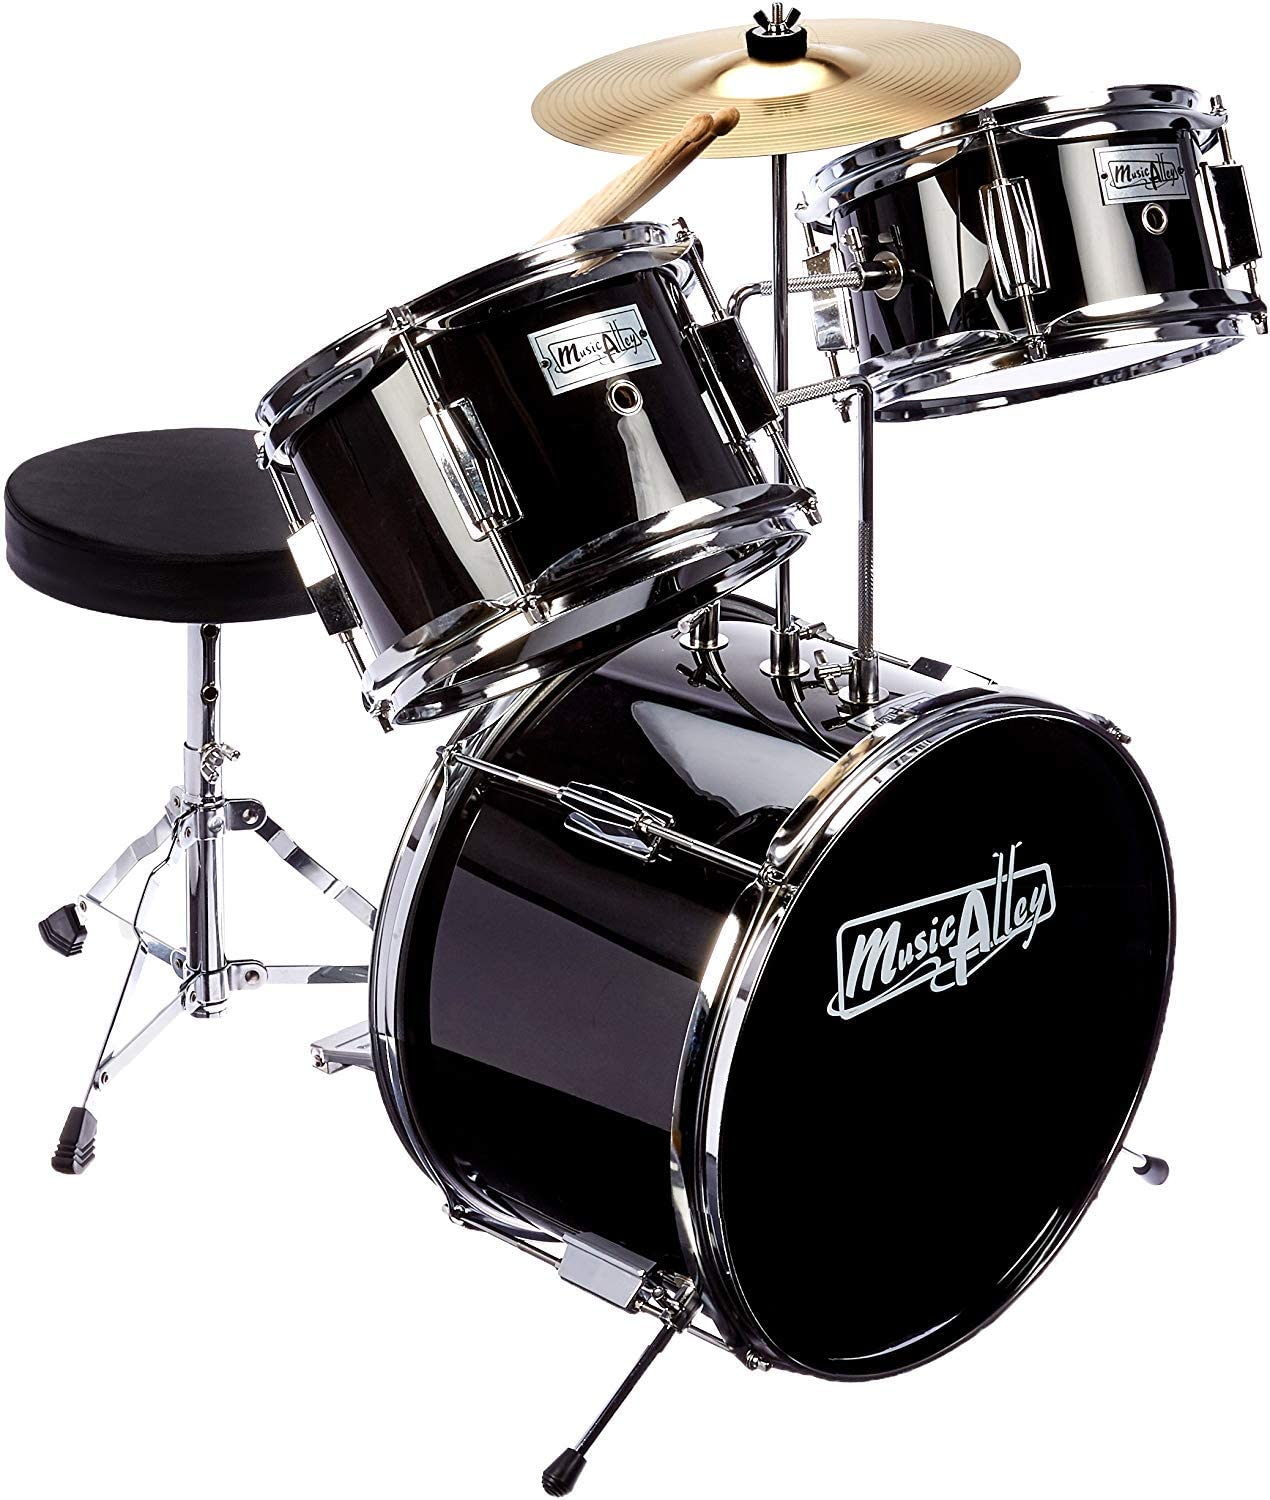 Music Alley 3 Piece Kids Drum Set with Throne | Drums For Beginner